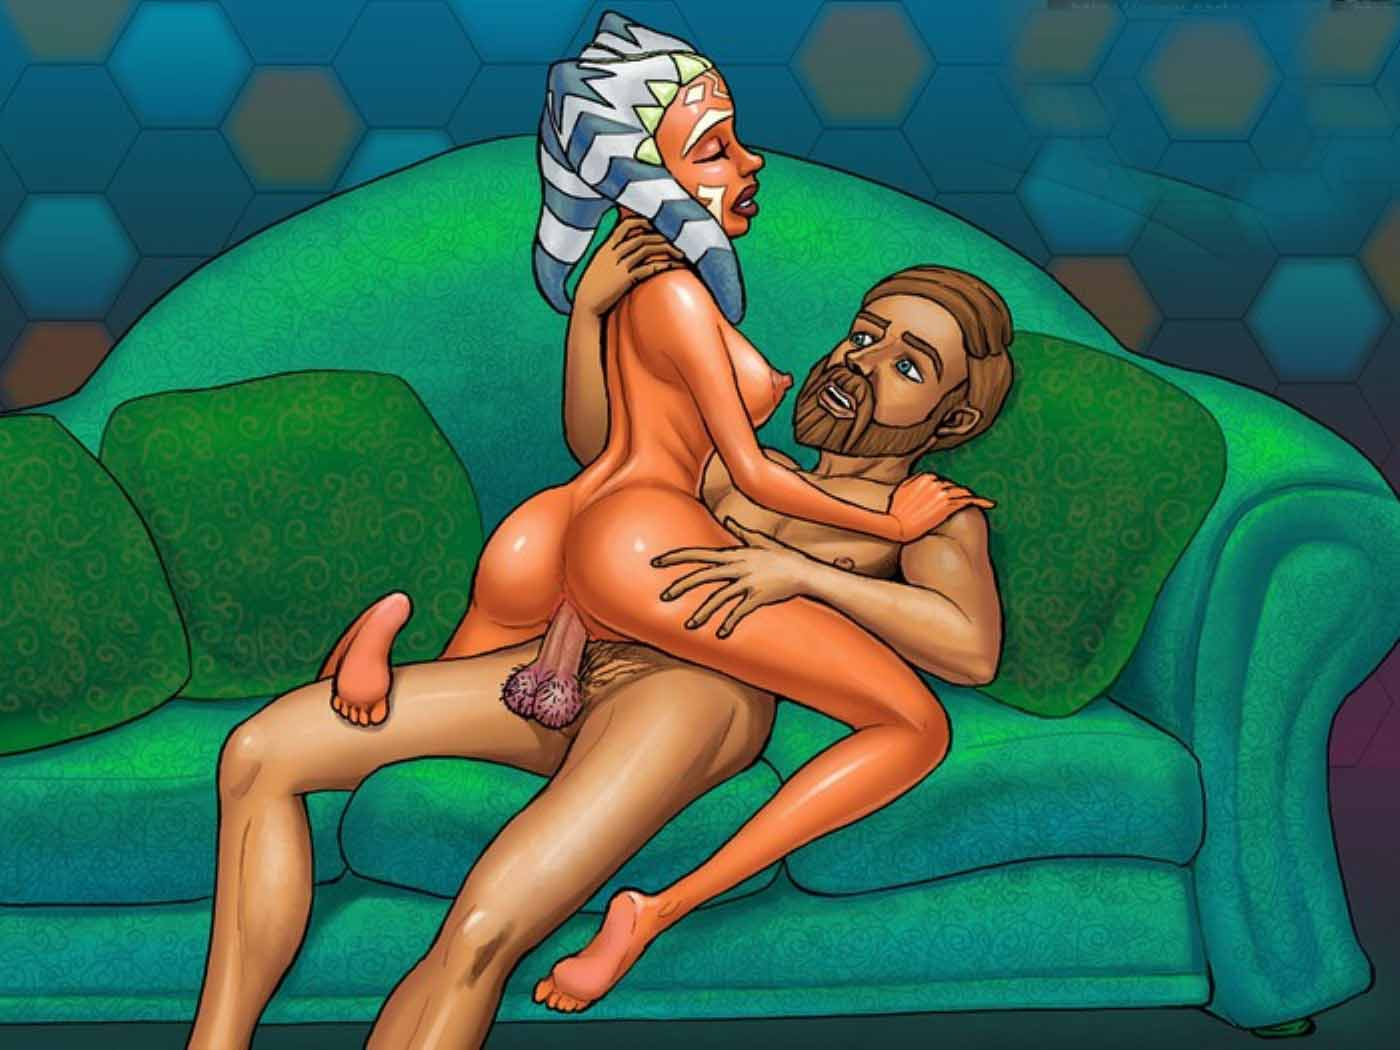 Starwars cartoon porno pics erotic scene